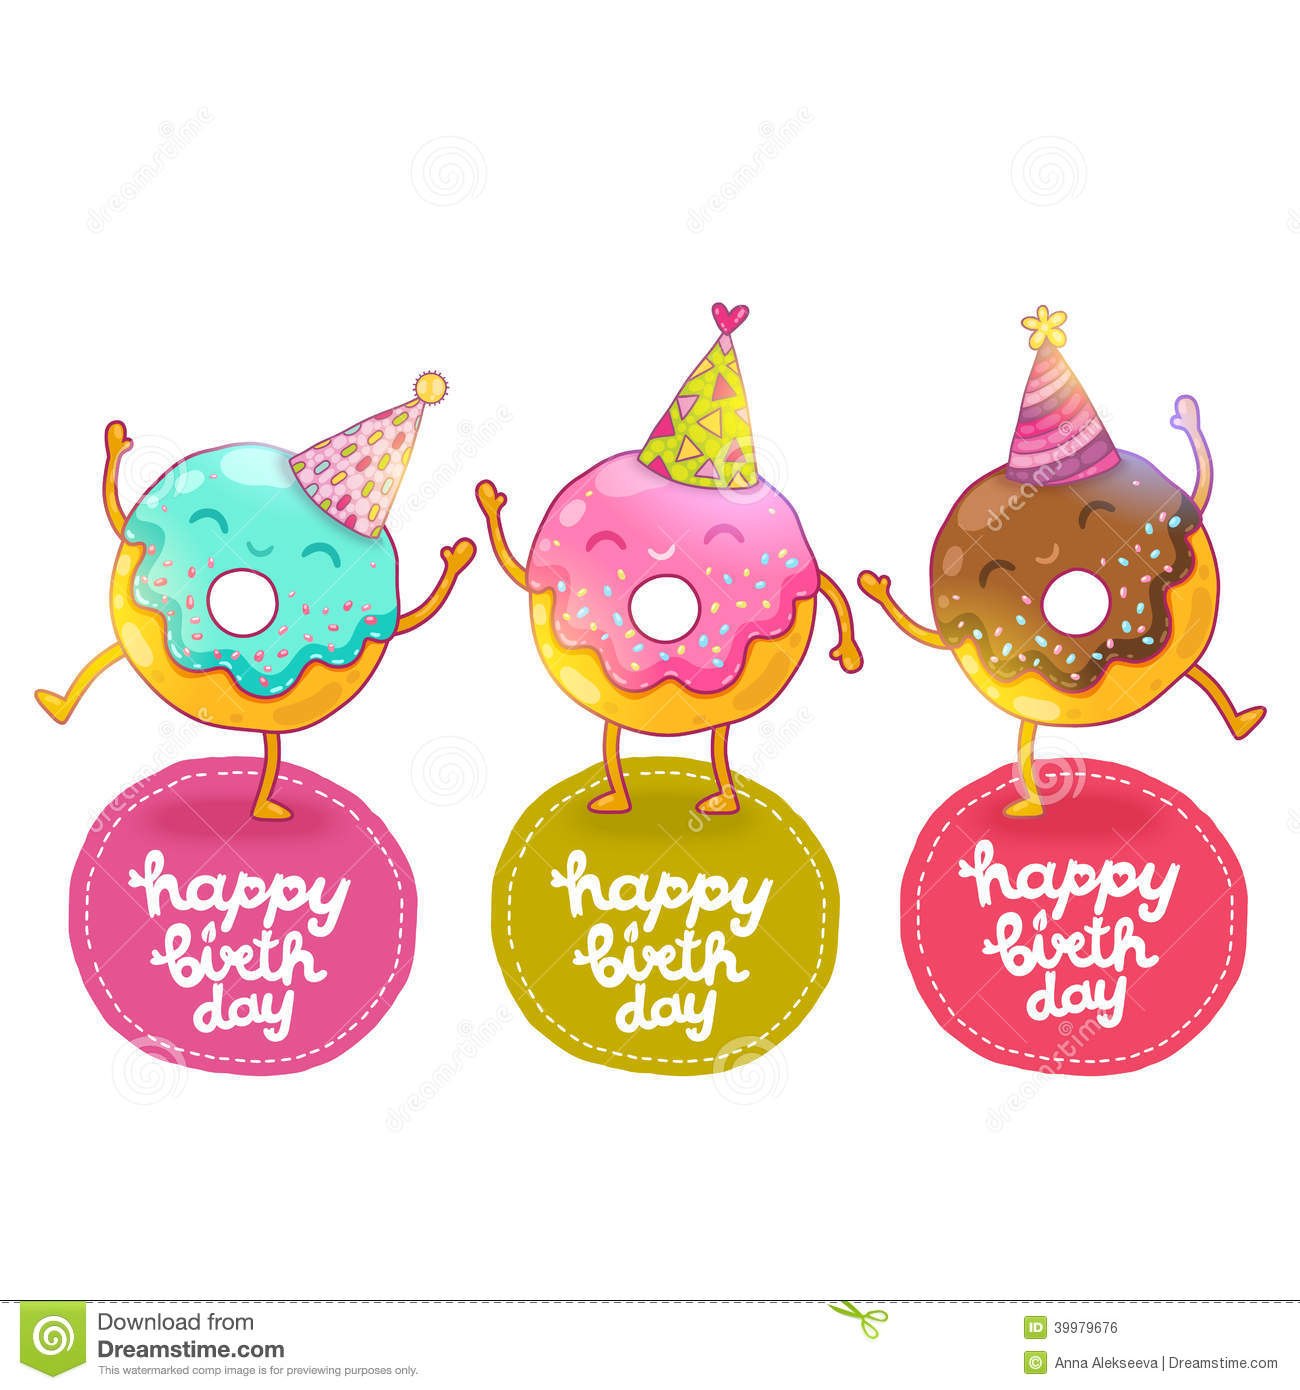 Happy Birthday Card Background With Cute Donut. Stock Vector - Image: 39979676